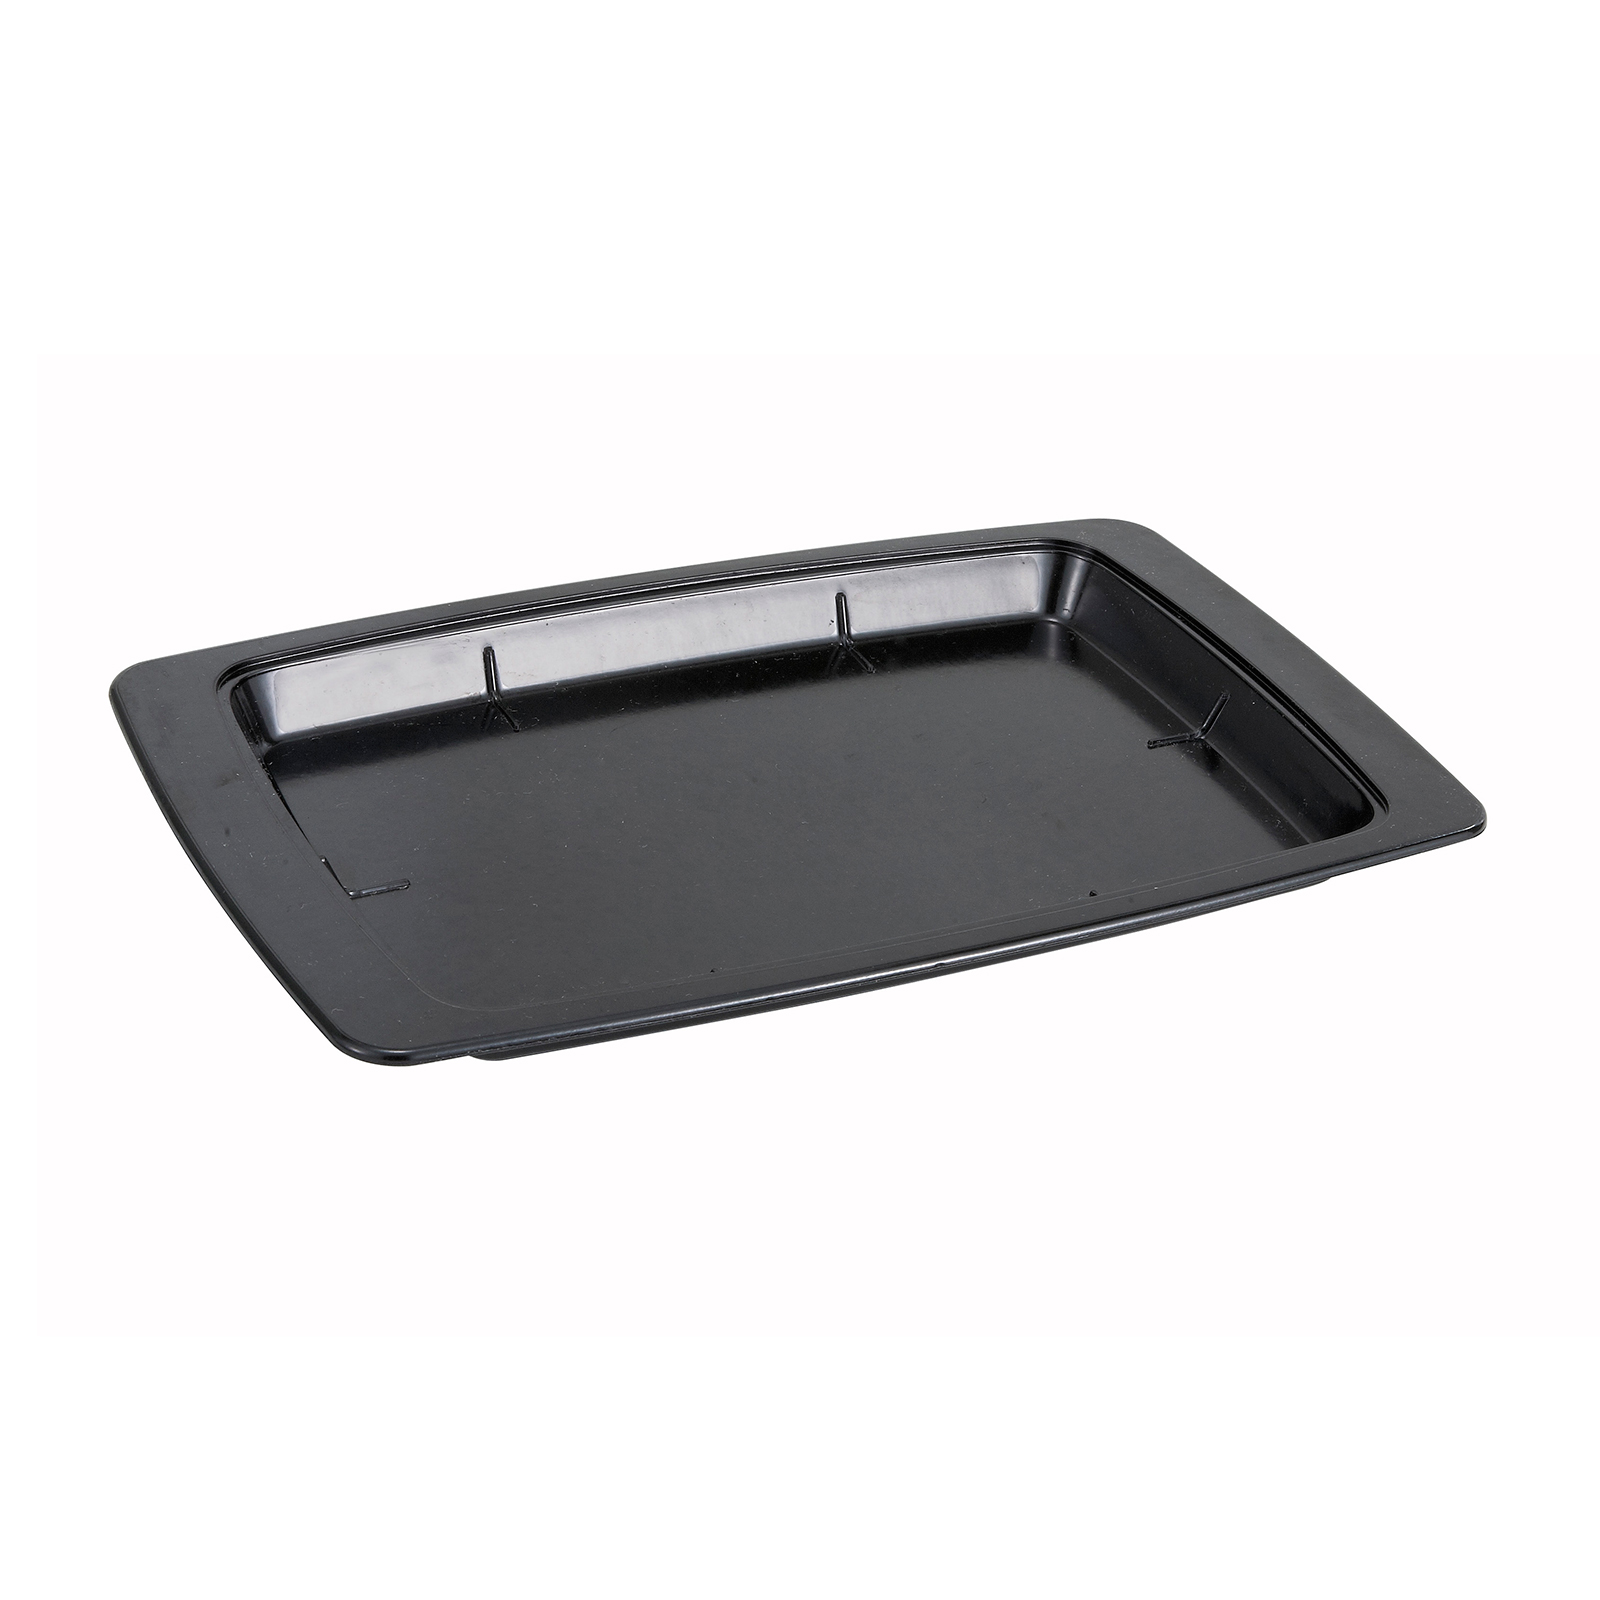 Winco SWU-11B sizzle thermal platter underliner